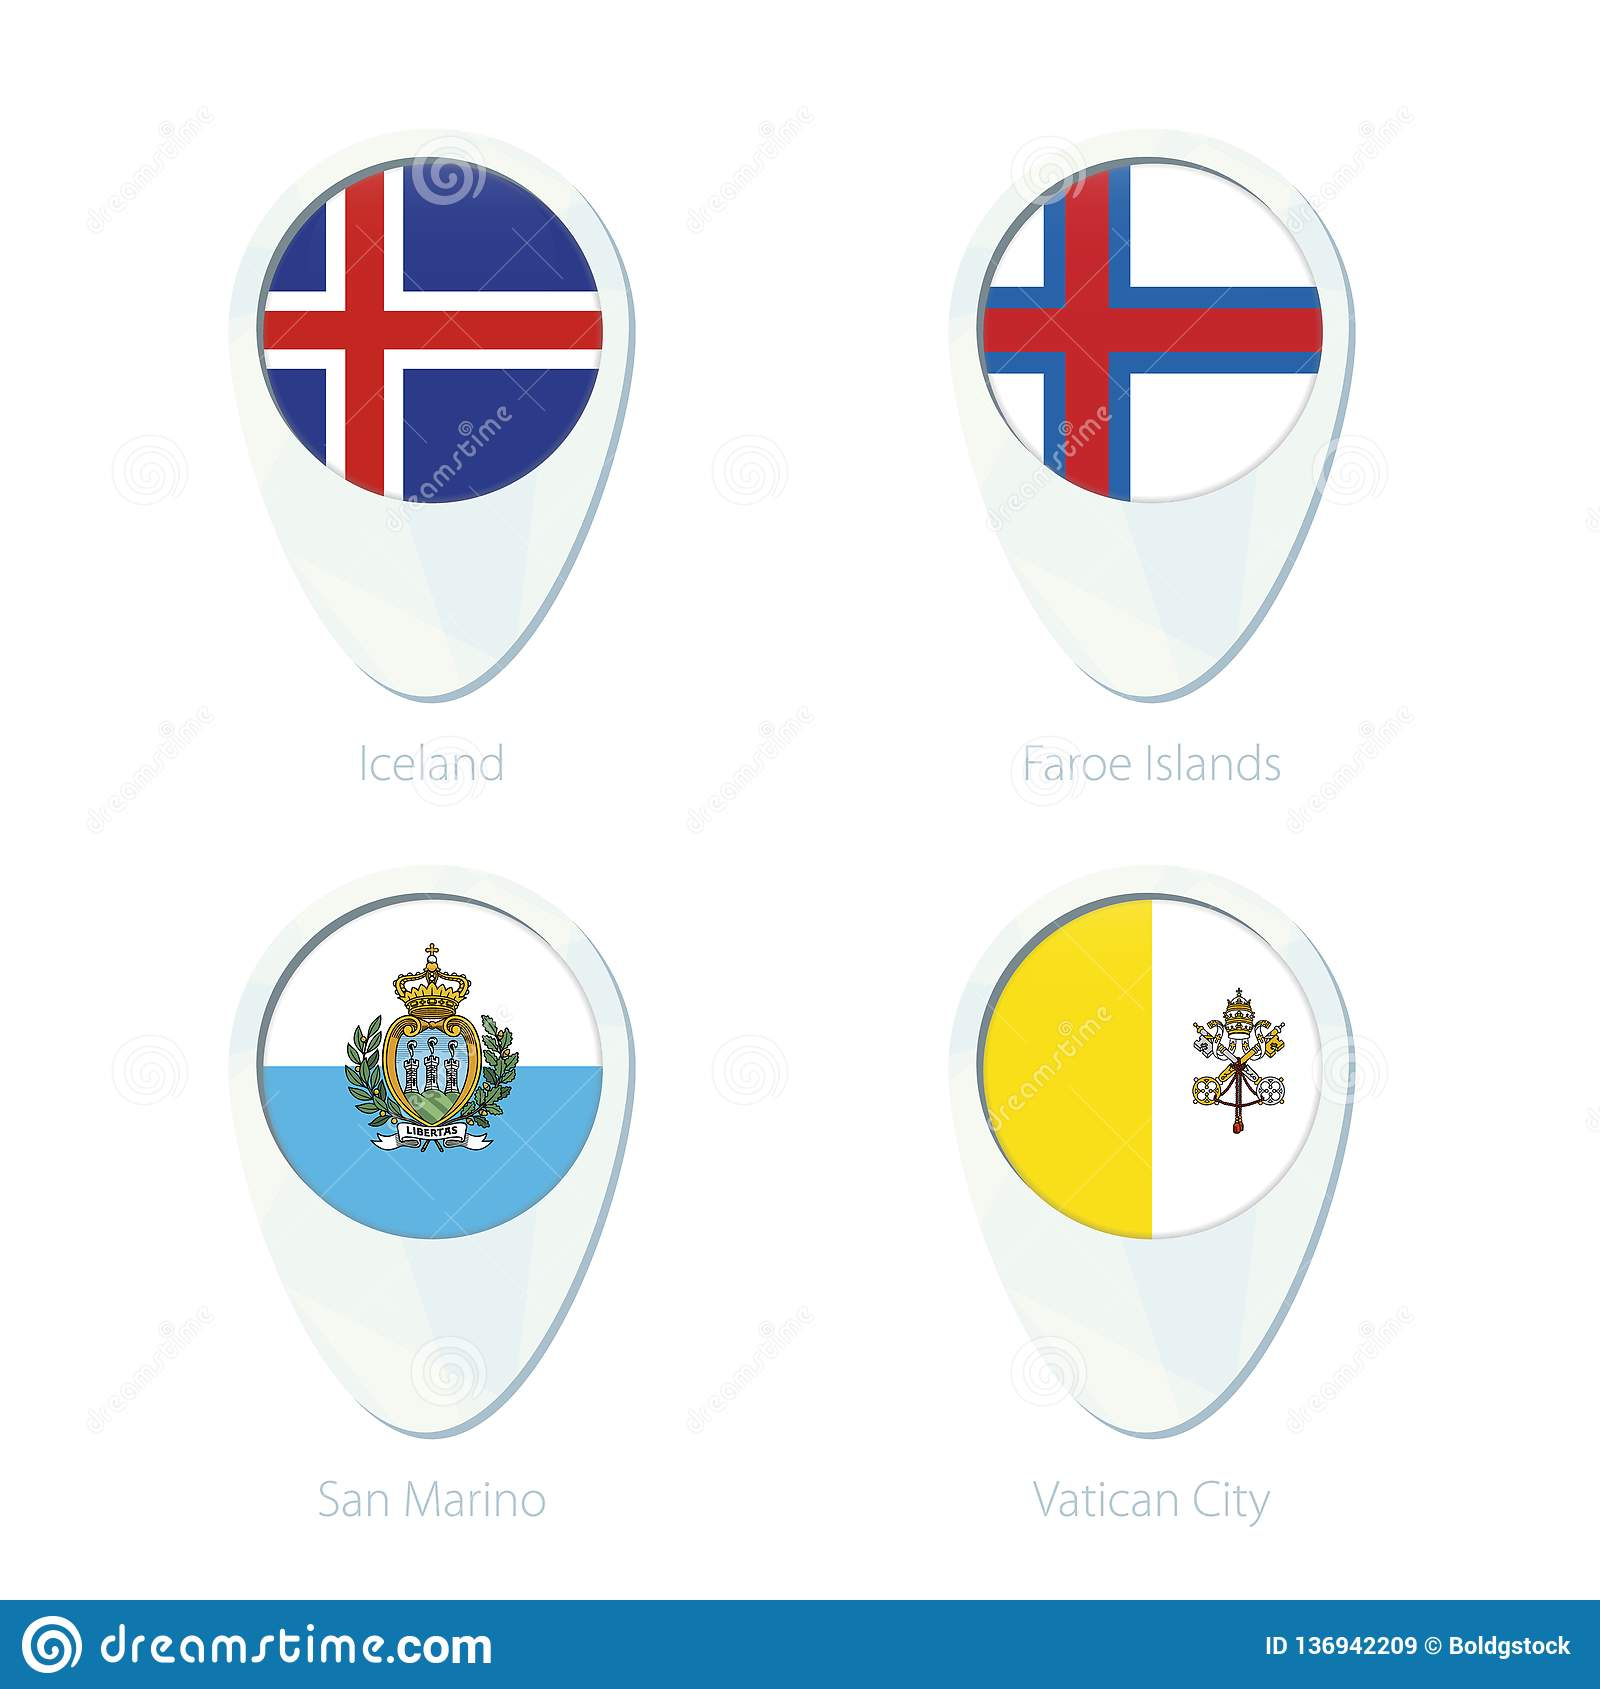 Iceland, Faroe Islands, San Marino, Vatican City Flag Location Map ...